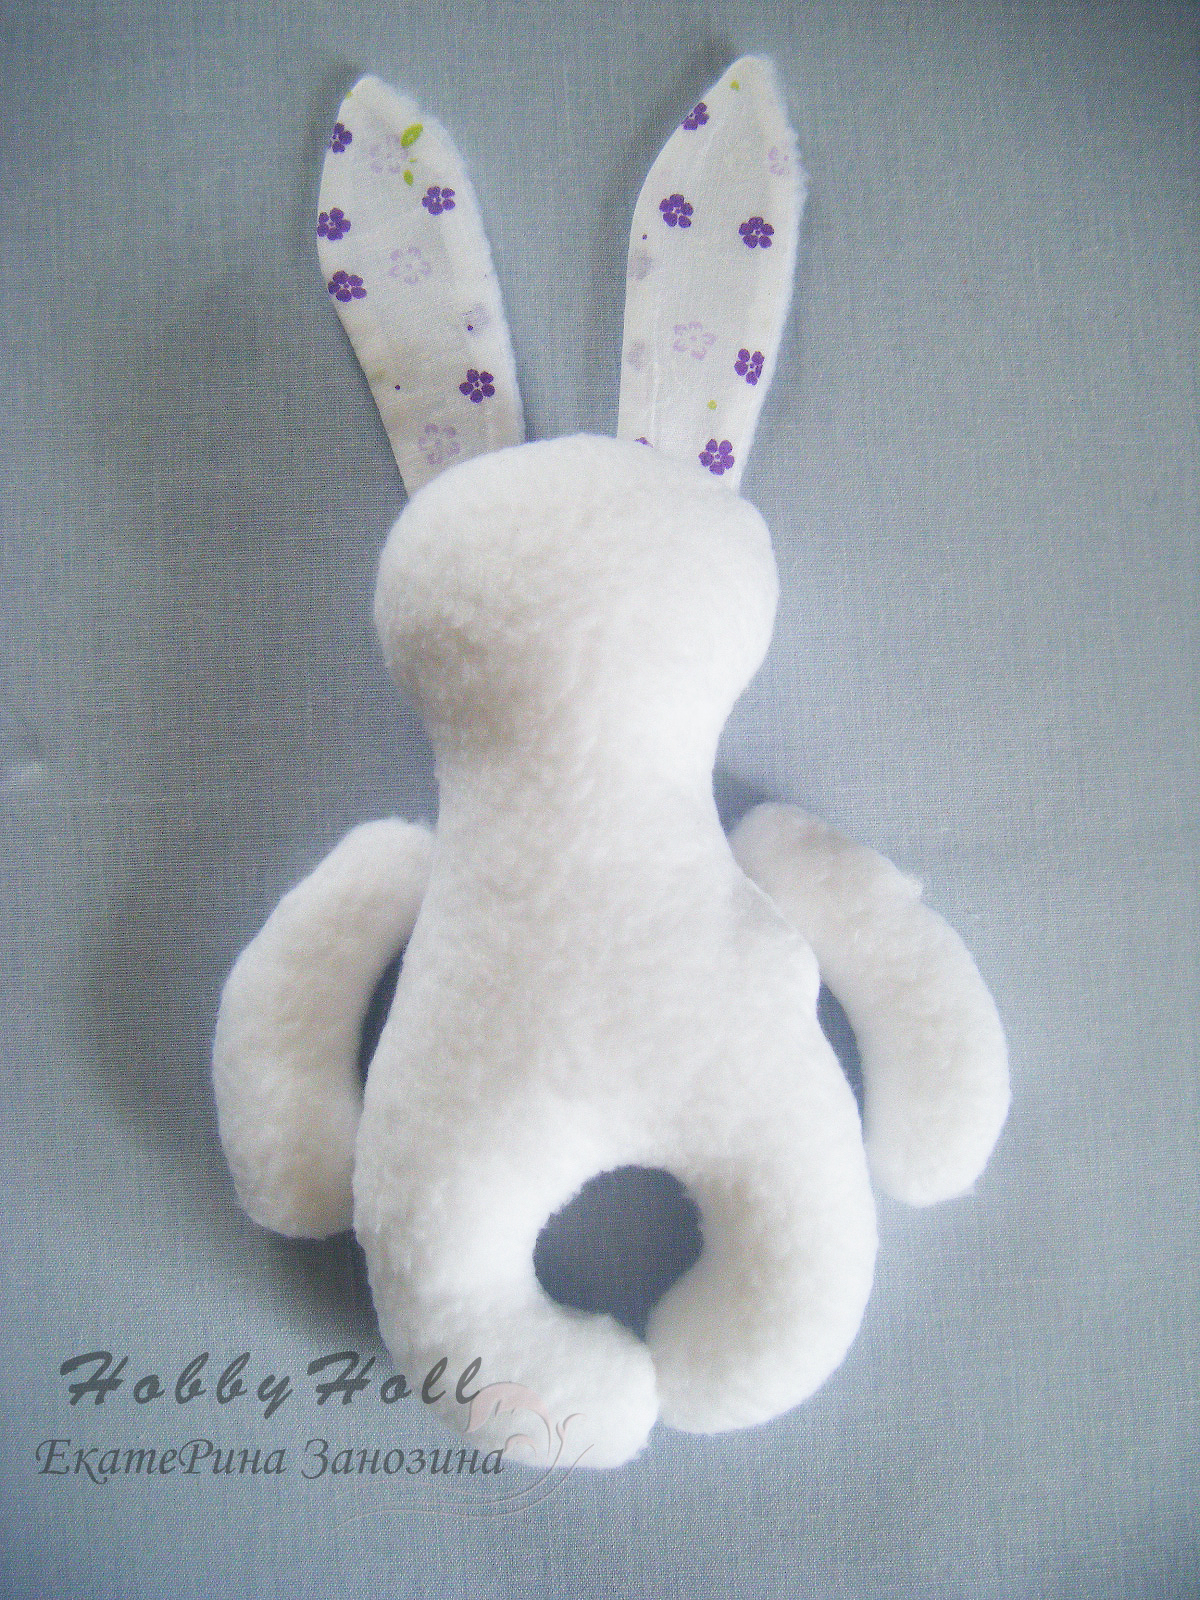 How-to-Make-an-Adorable-Felted-Bunny-6.jpg